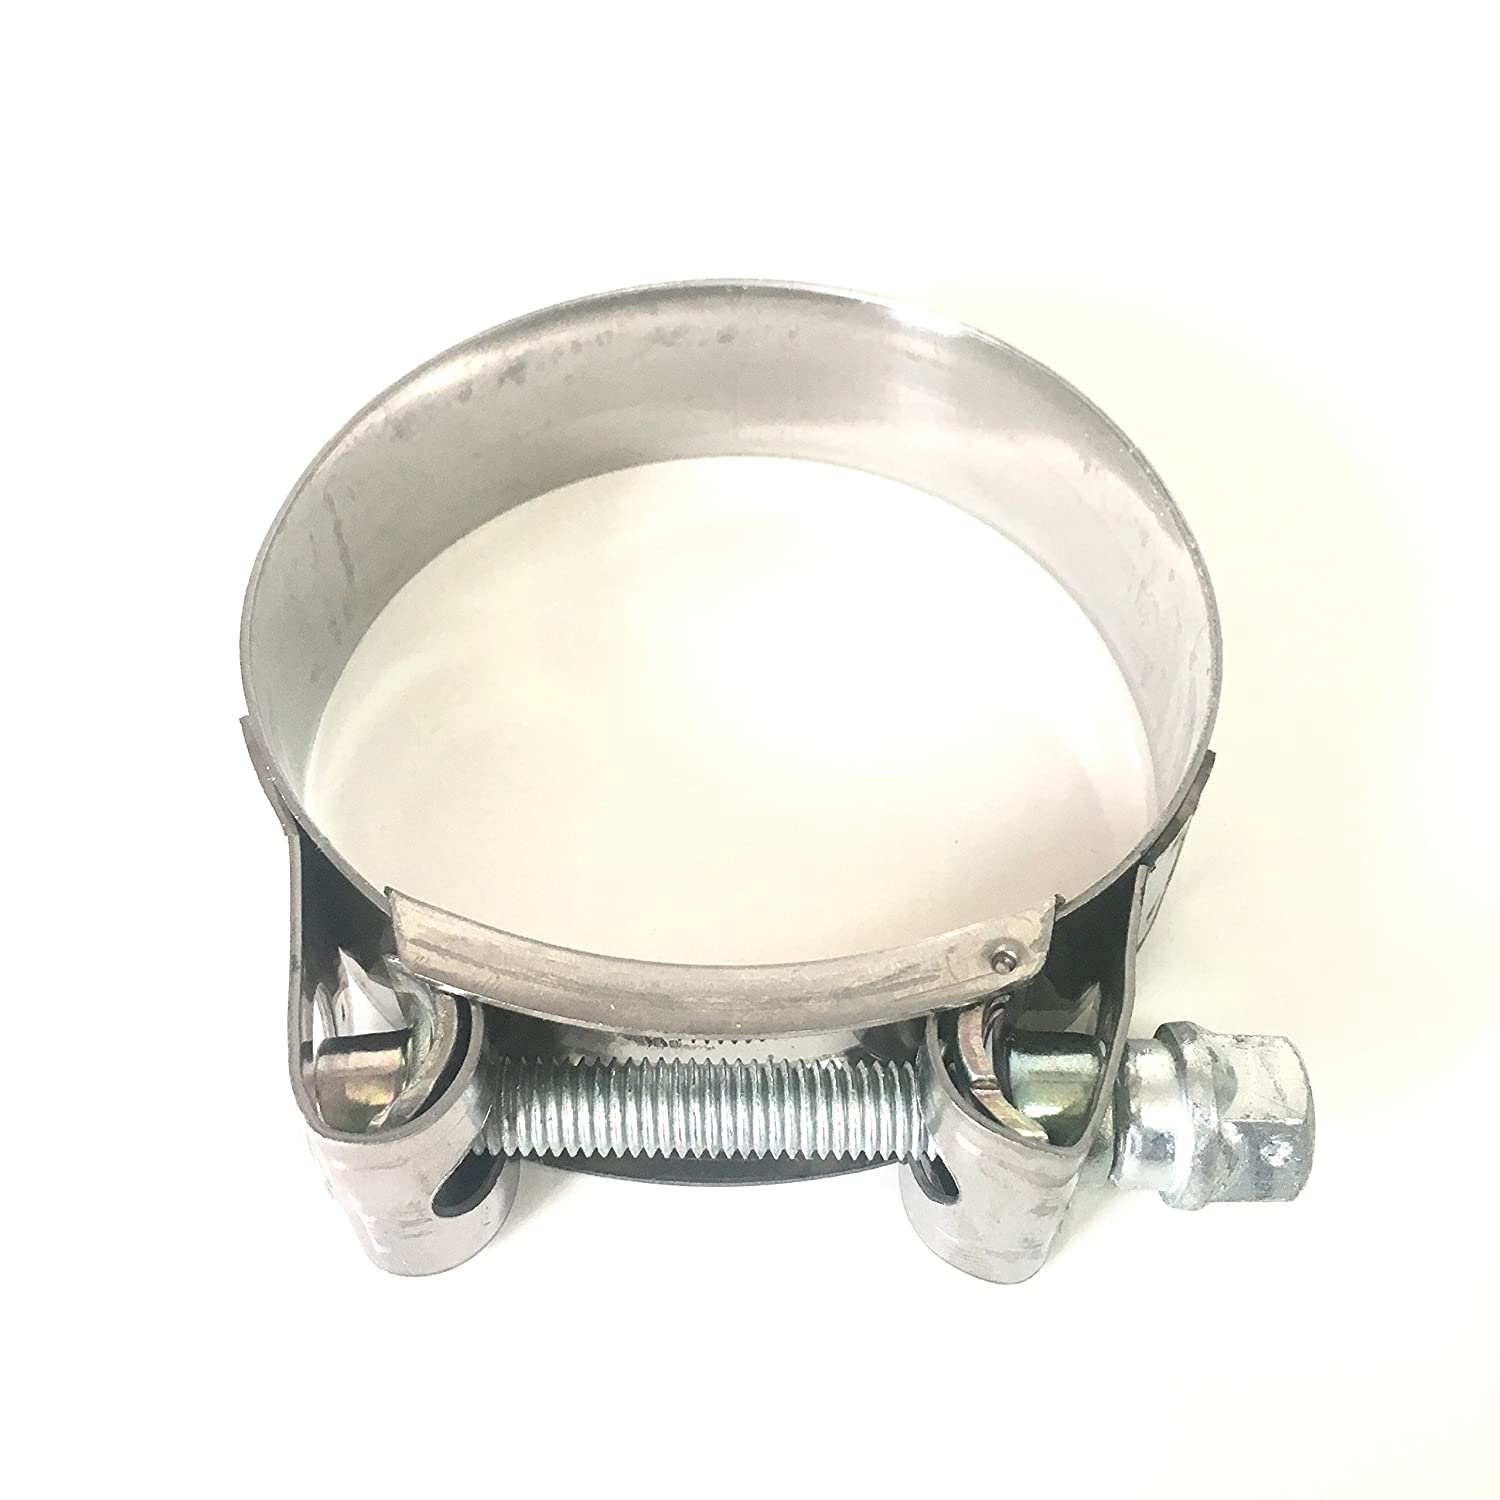 Mikalor - Supra W2 73mm-79mm Stainless Steel 2.5' T-Bolt Hose Clamp (Qty1) - 119-07000-1000 03019194